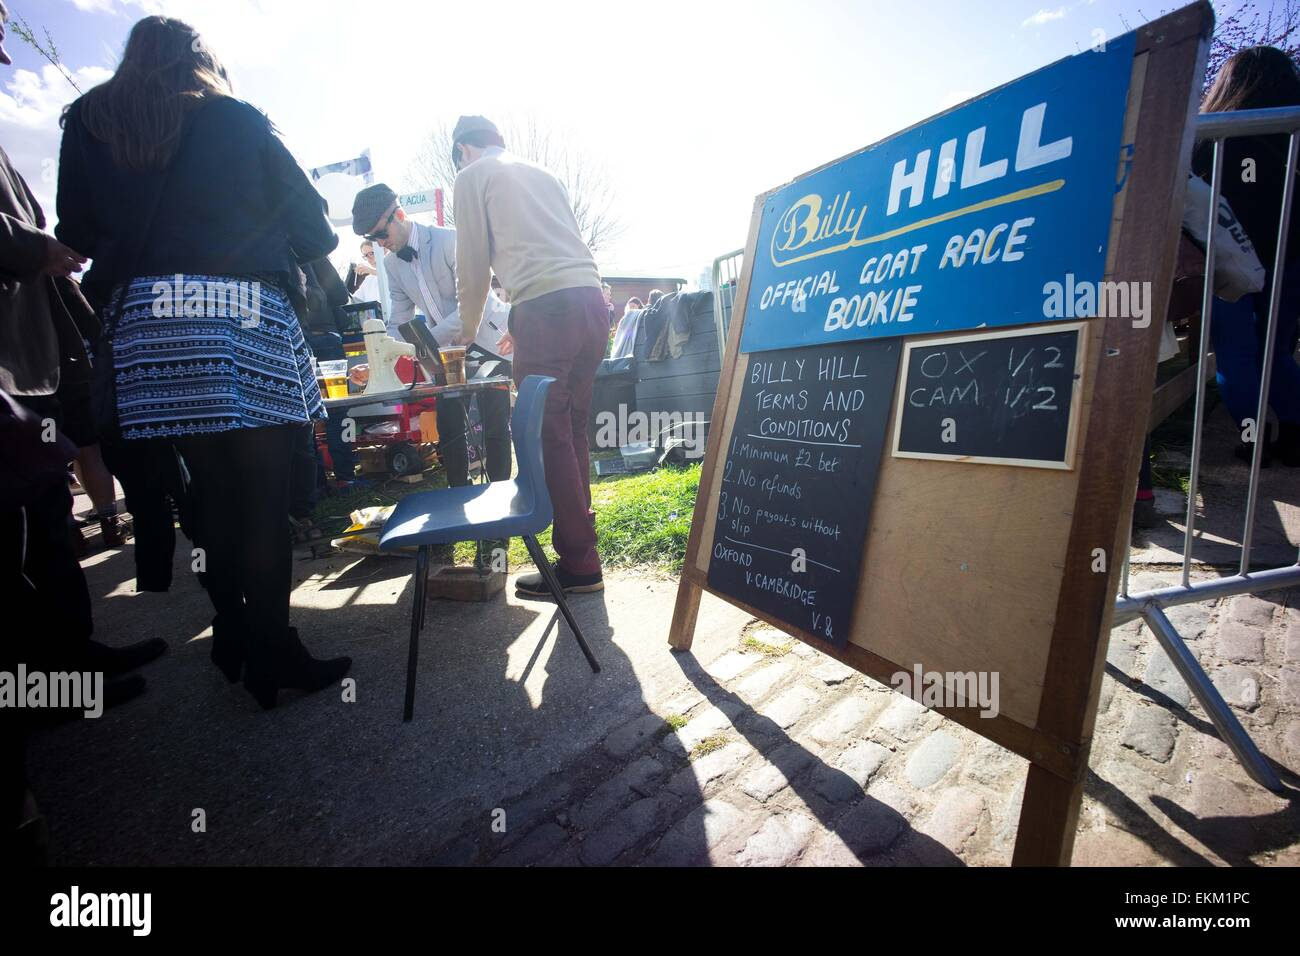 London, United Kingdom. 11th Apr, 2015. A betting station seen at the goat race. Annual goat racing event hosted - Stock Image